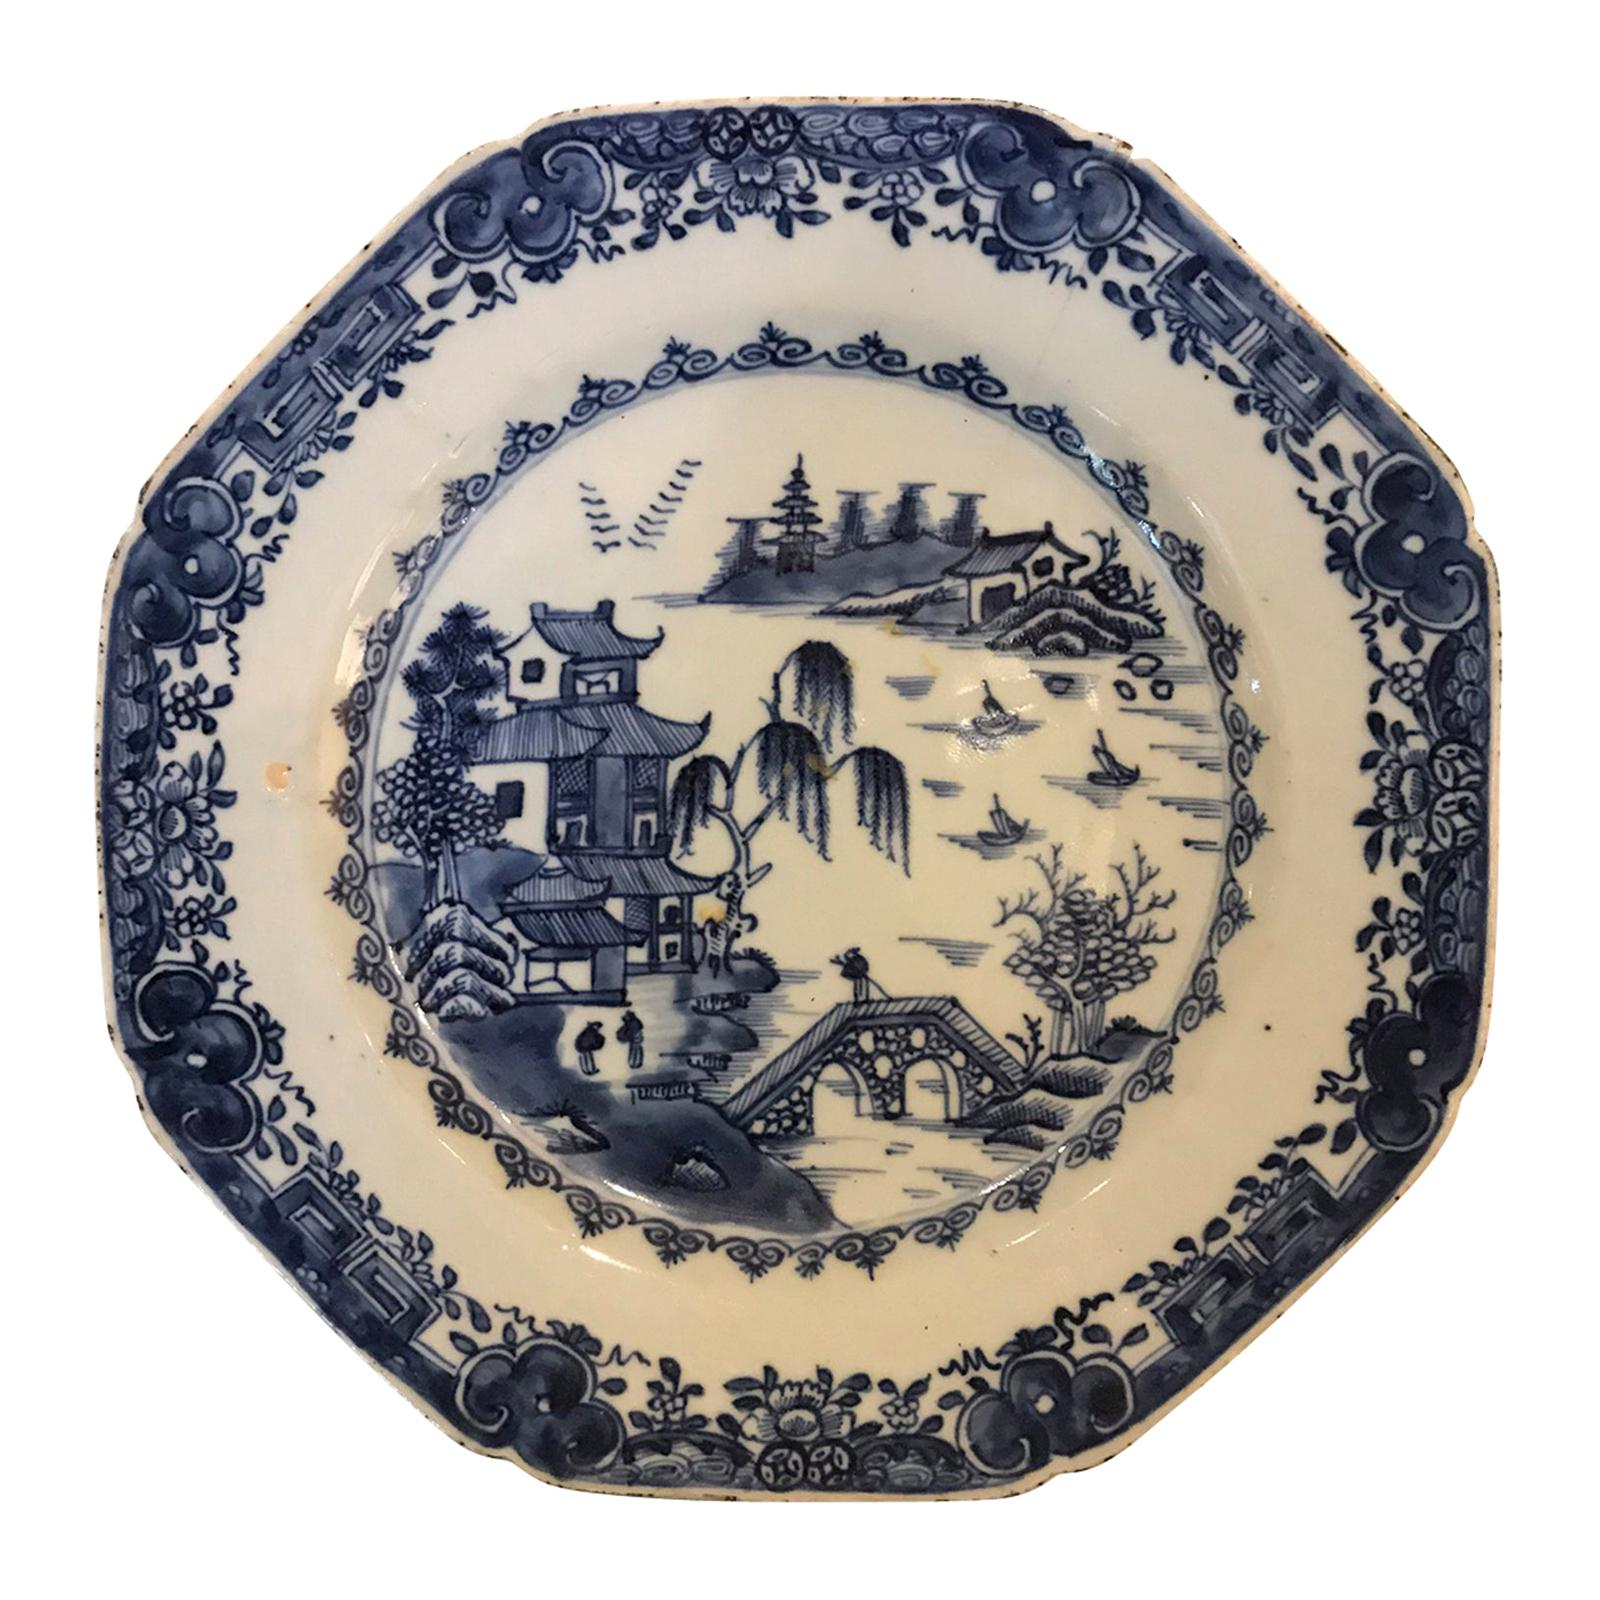 18th Century Chinese Blue and White Porcelain Octagonal Plate